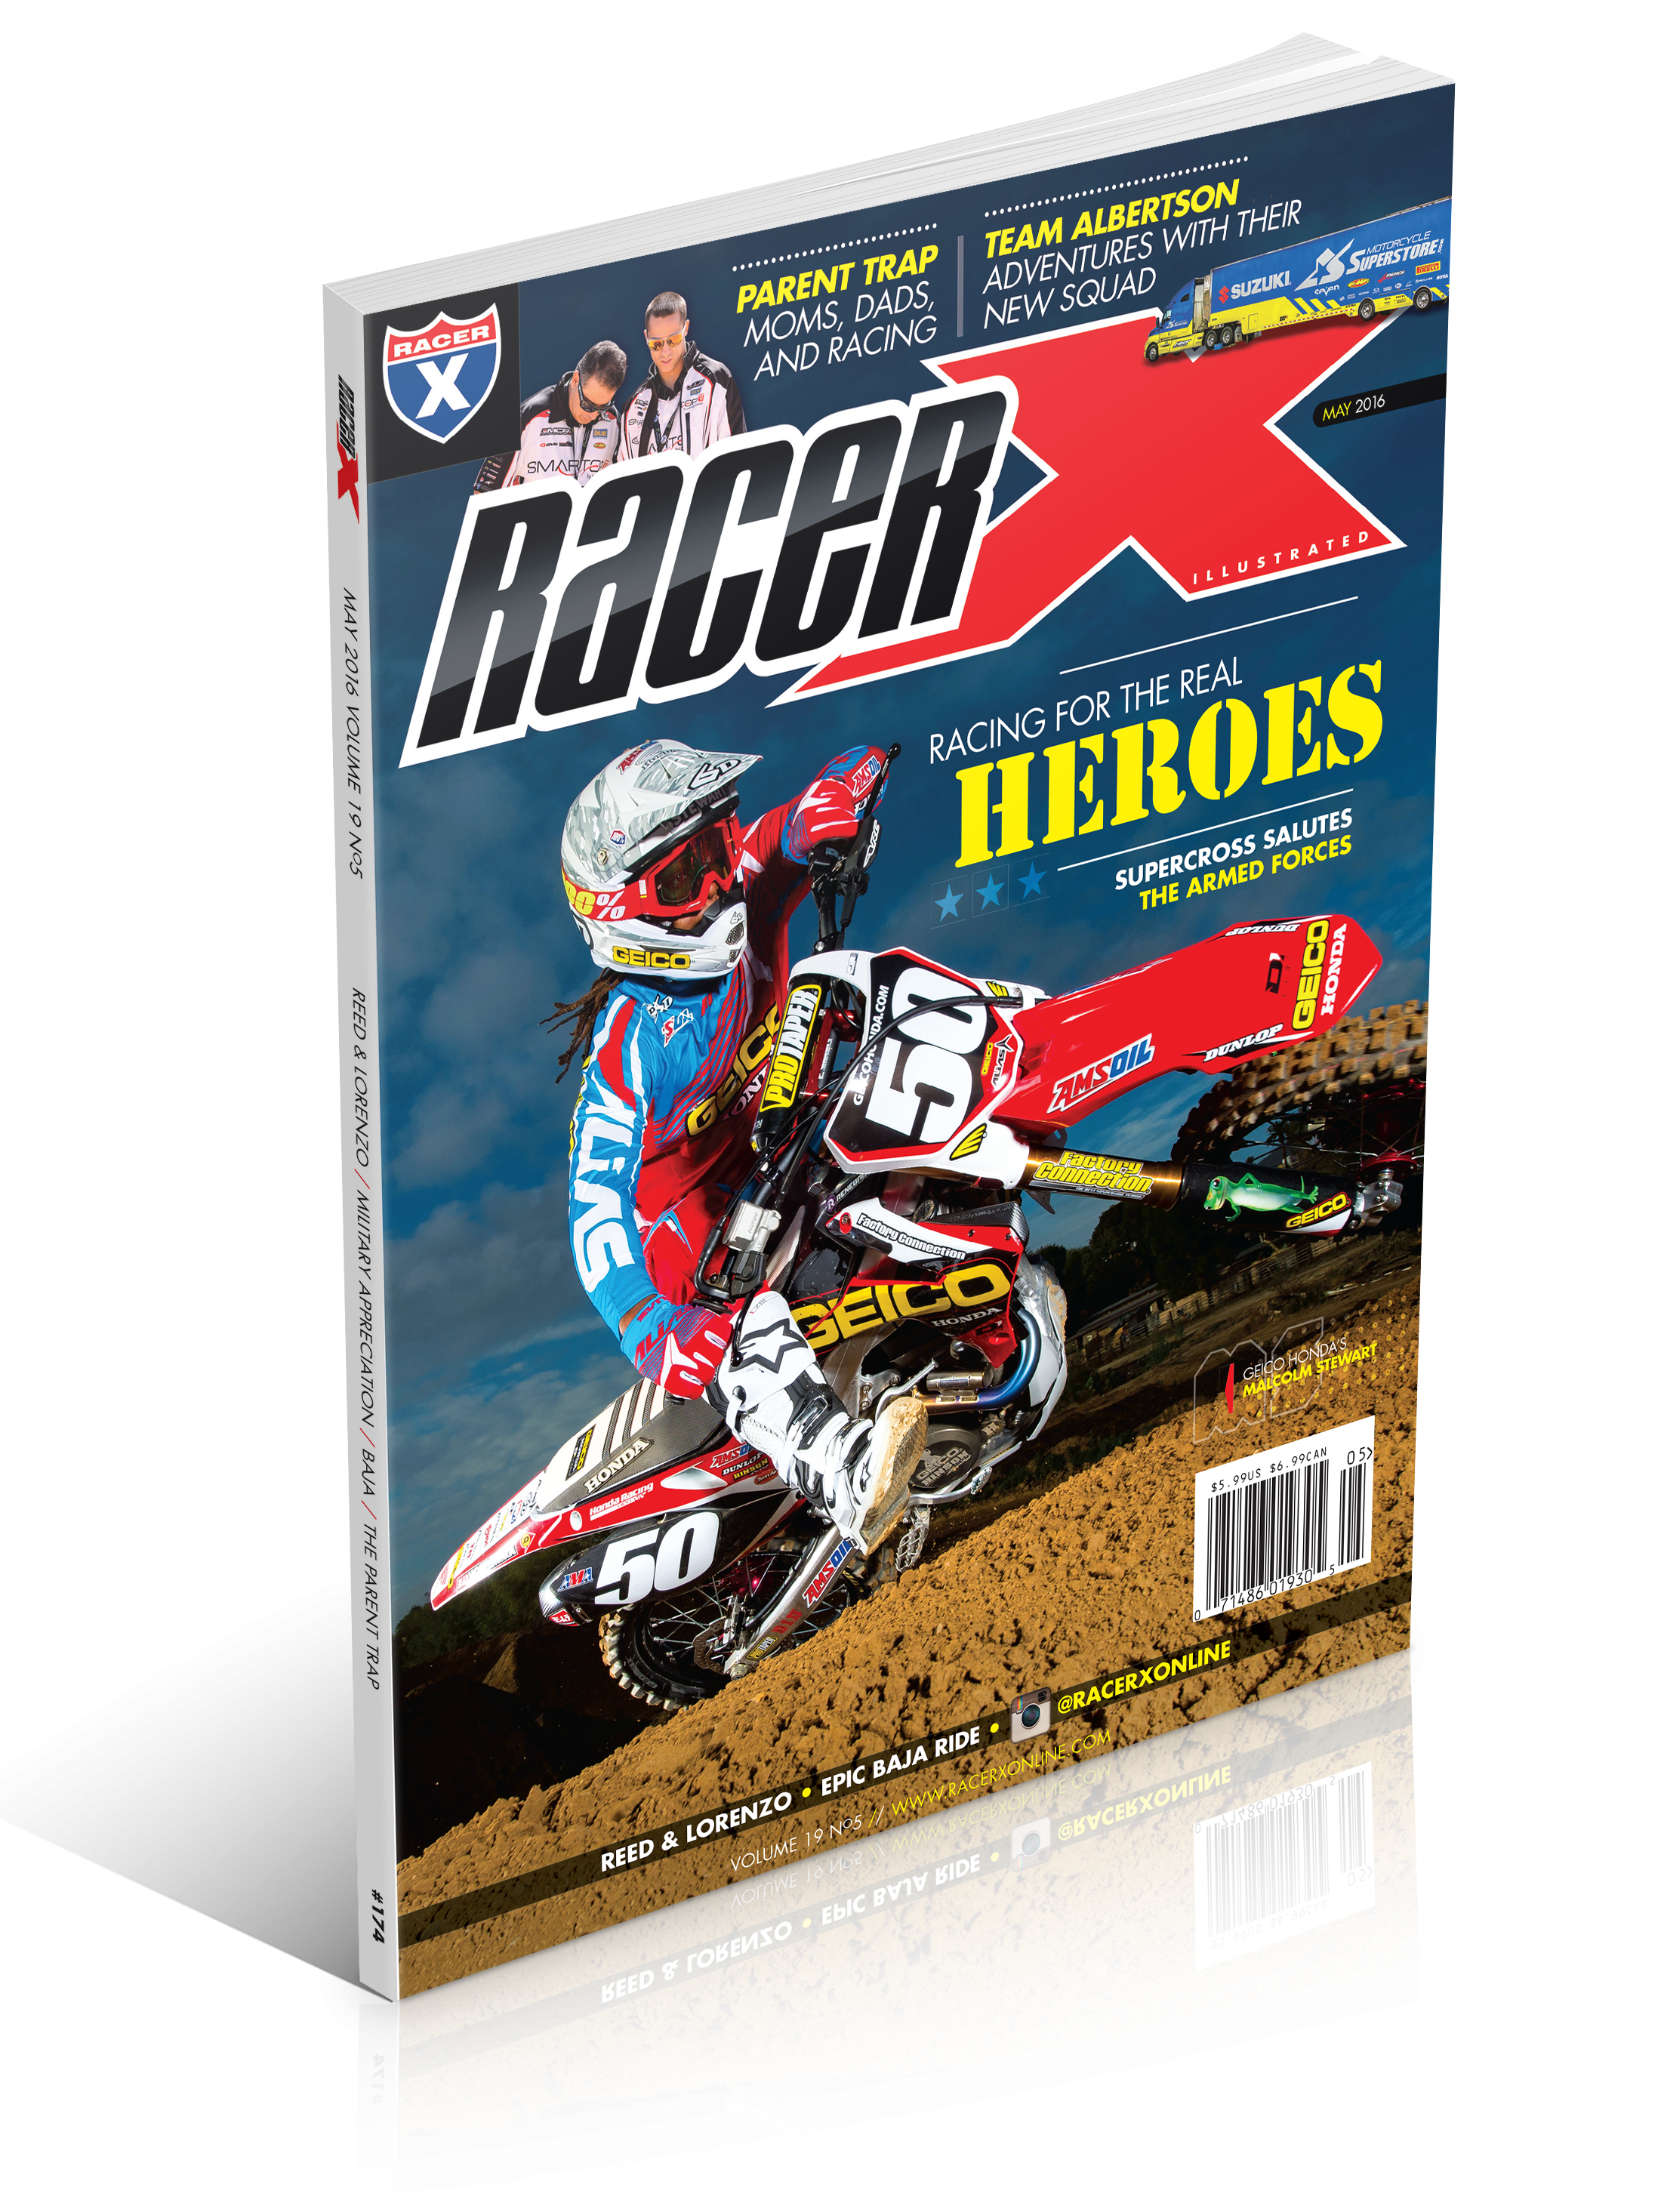 The May 2016 Issue - Racer X Illustrated Supercross Magazine